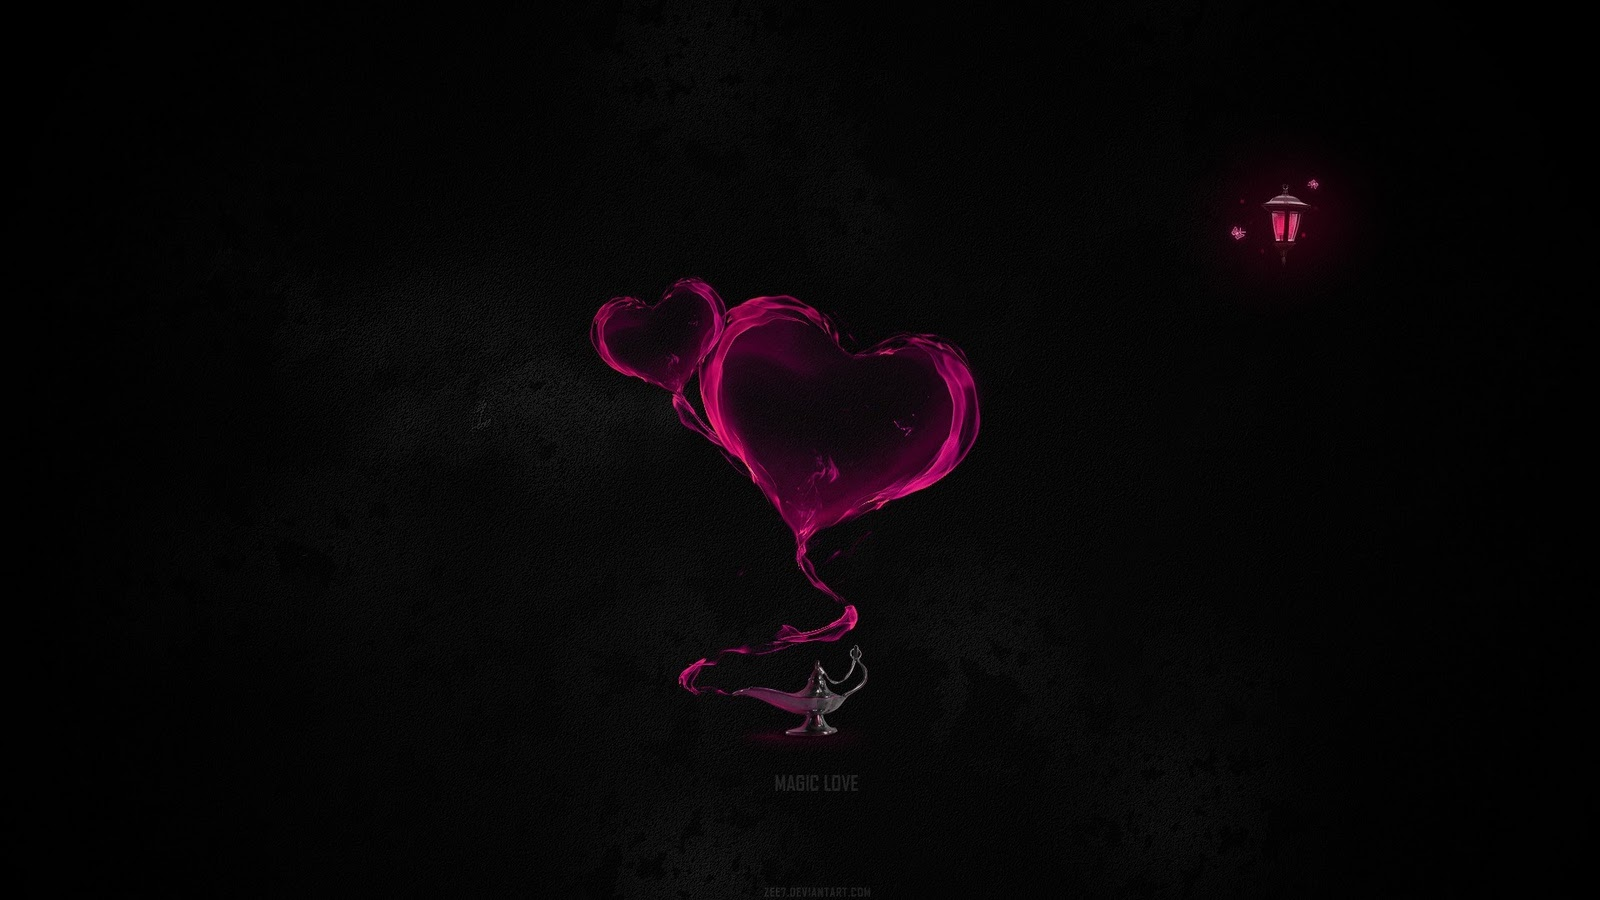 Hd Wallpaper Of Love For Laptop : TOP HD WALLPAPERS: LOVE HD WALLPAPER